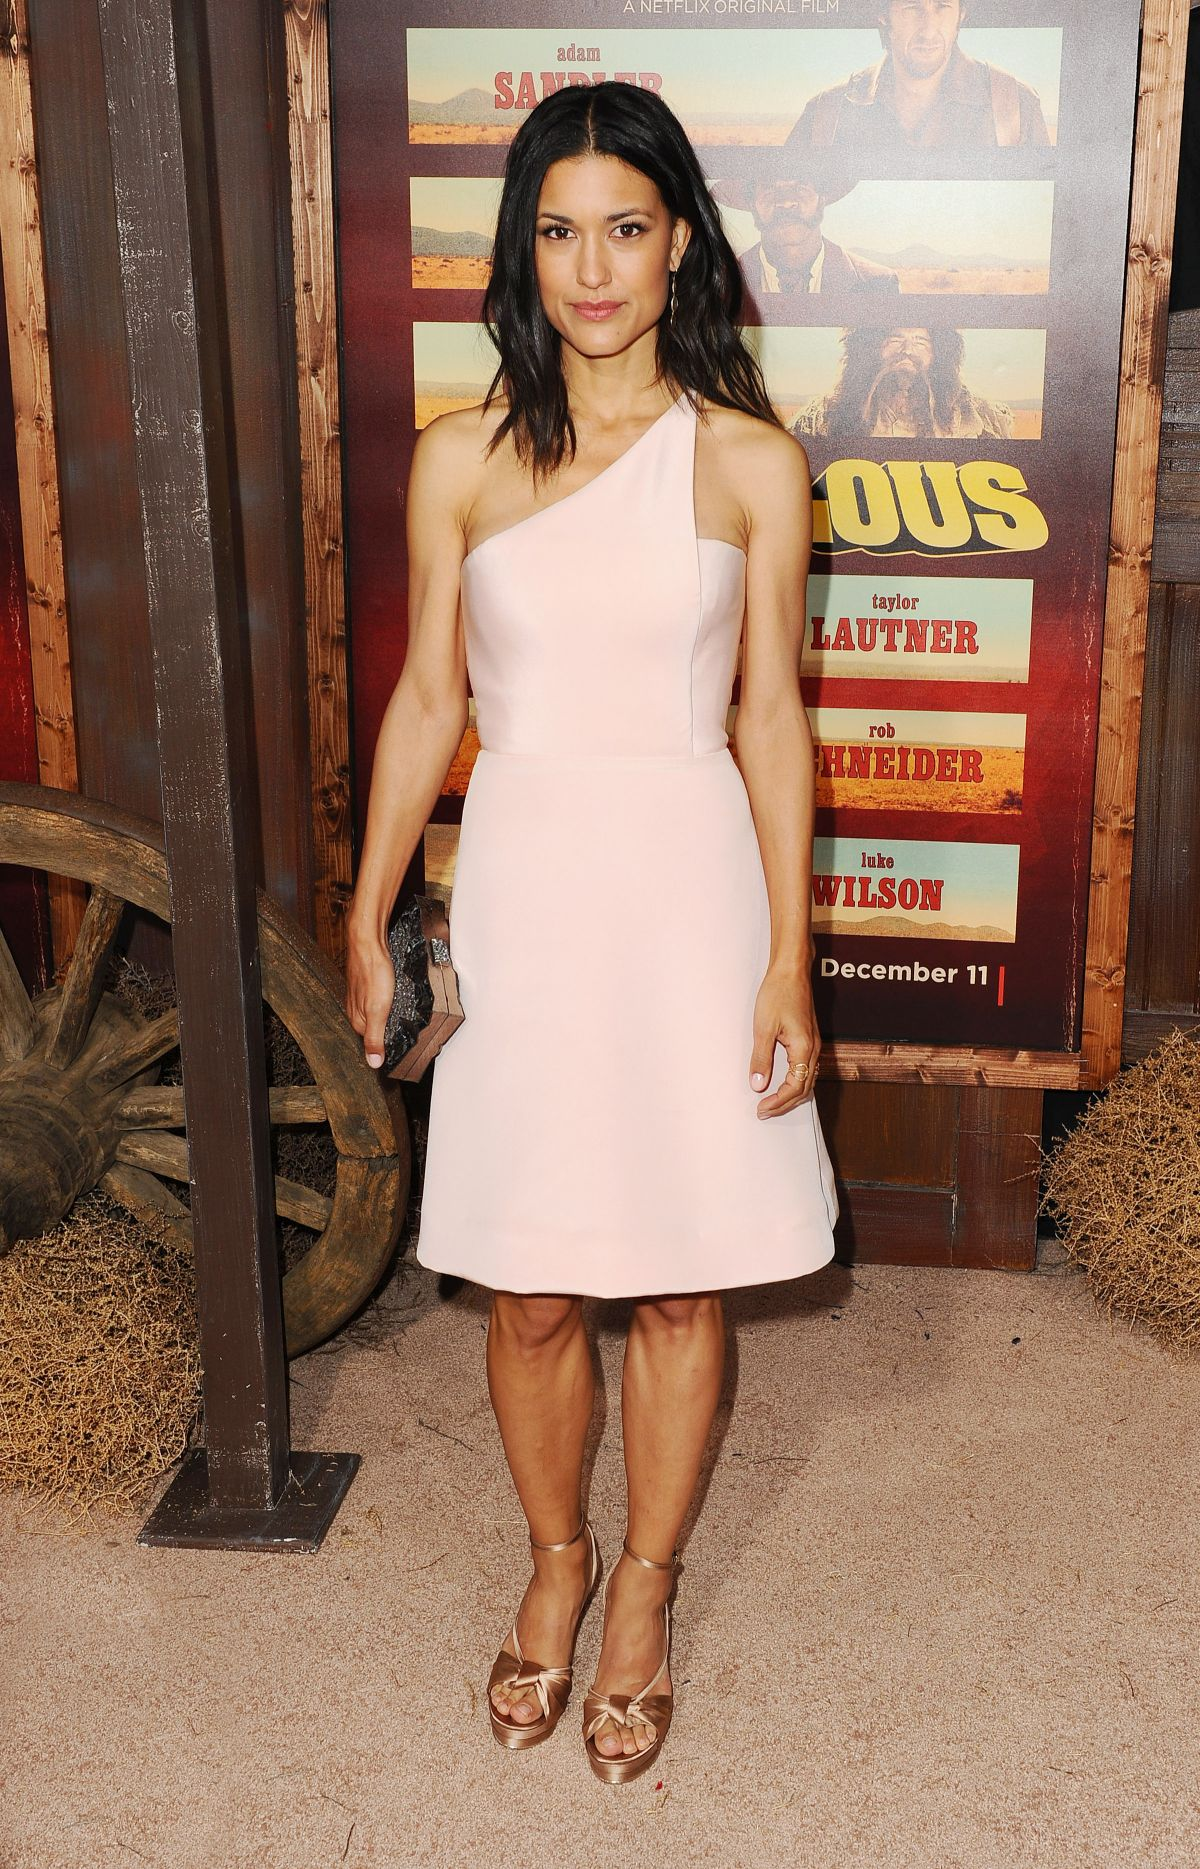 JULIA JONES at The Ridiculous 6 Premiere in Univesal City 11/30/2015